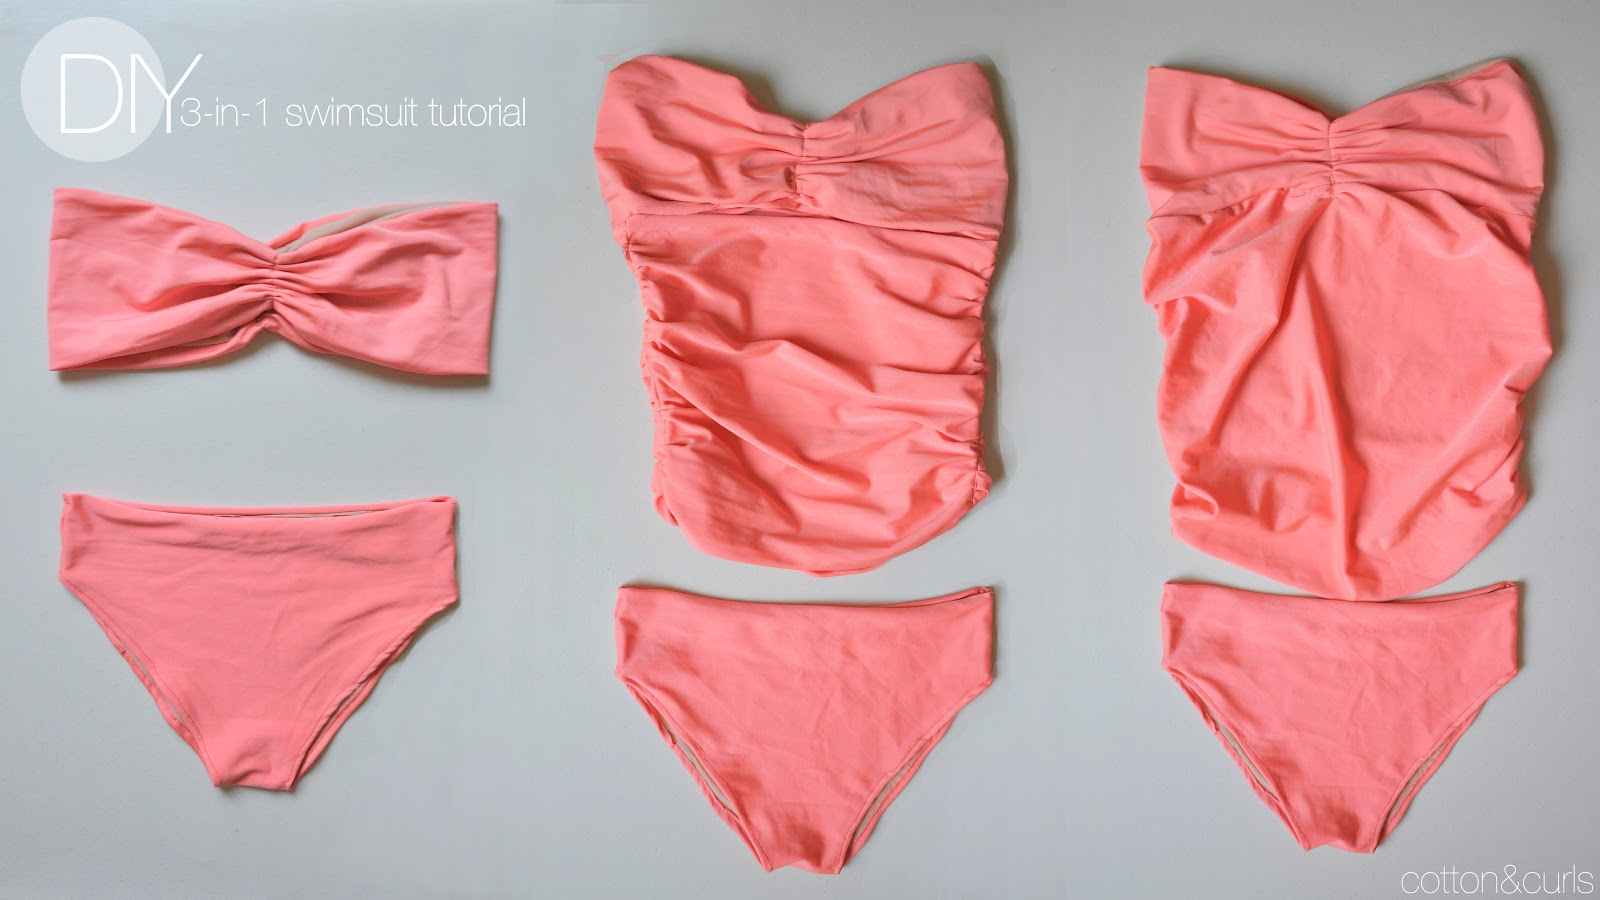 Diy maternity swimsuit sewing tutorial non maternity included diy maternity swimsuit sewing tutorial non maternity included jeuxipadfo Gallery